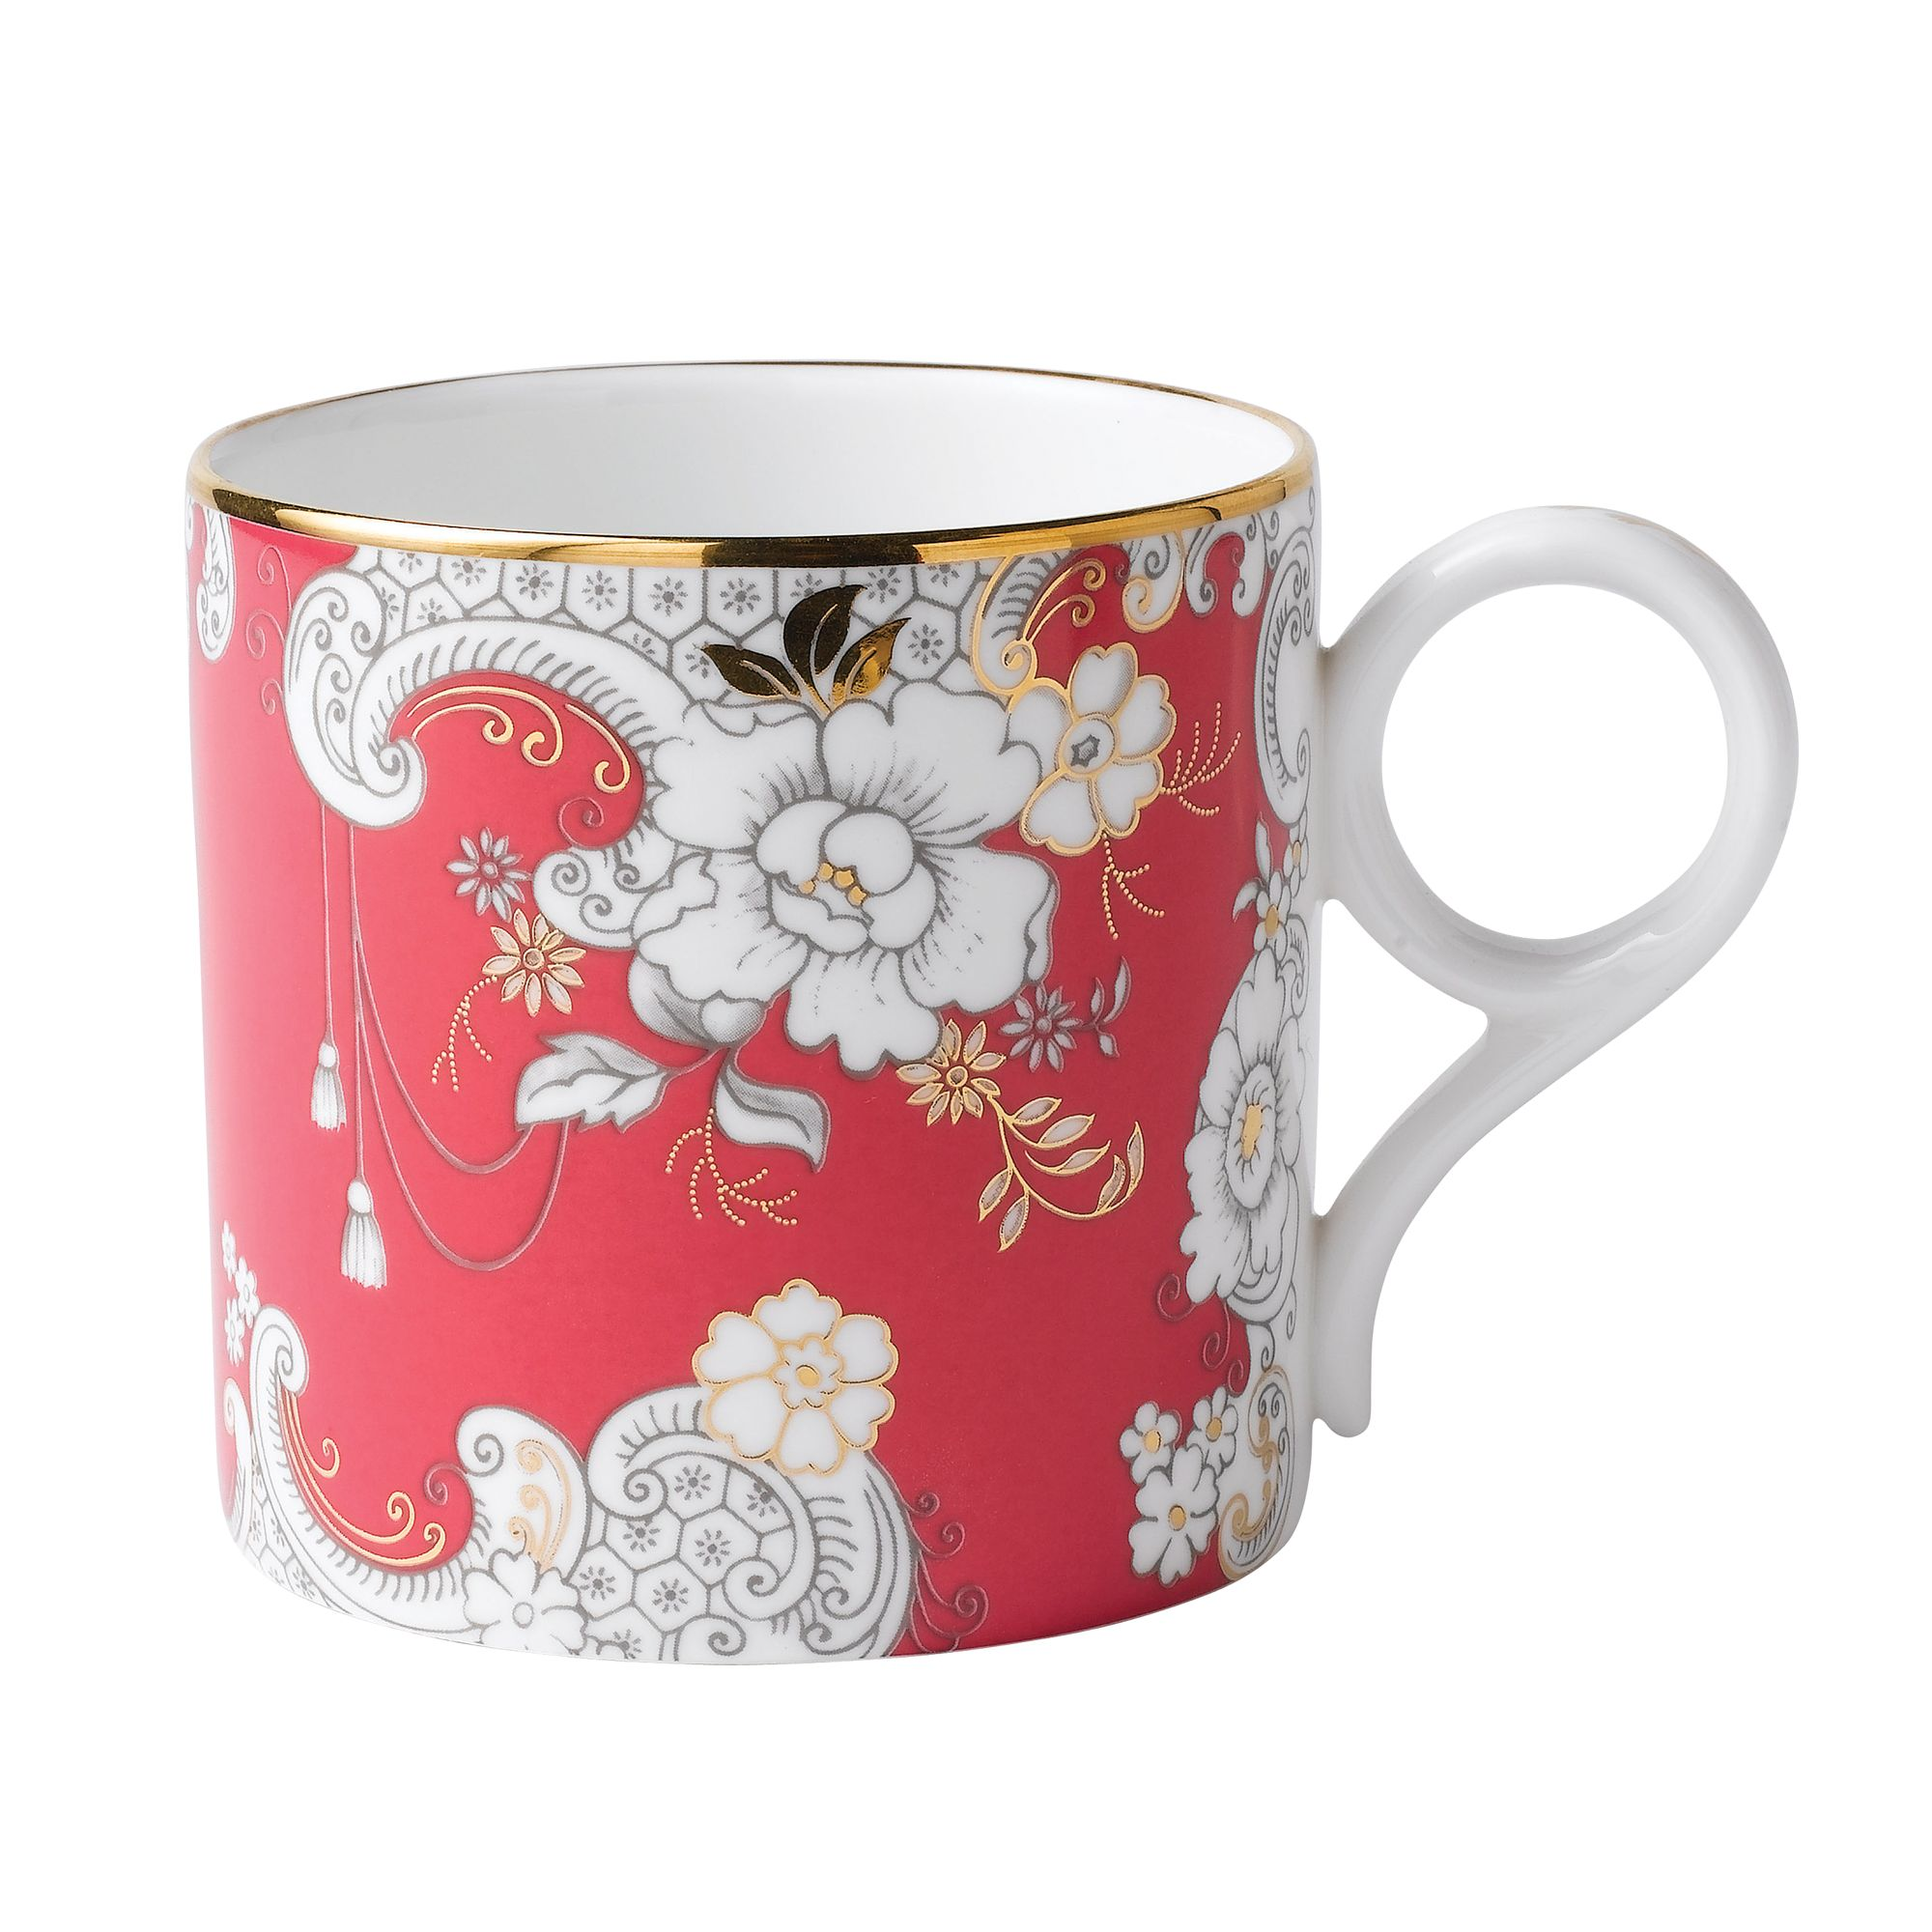 Archive Collection Pink Rococo Mug